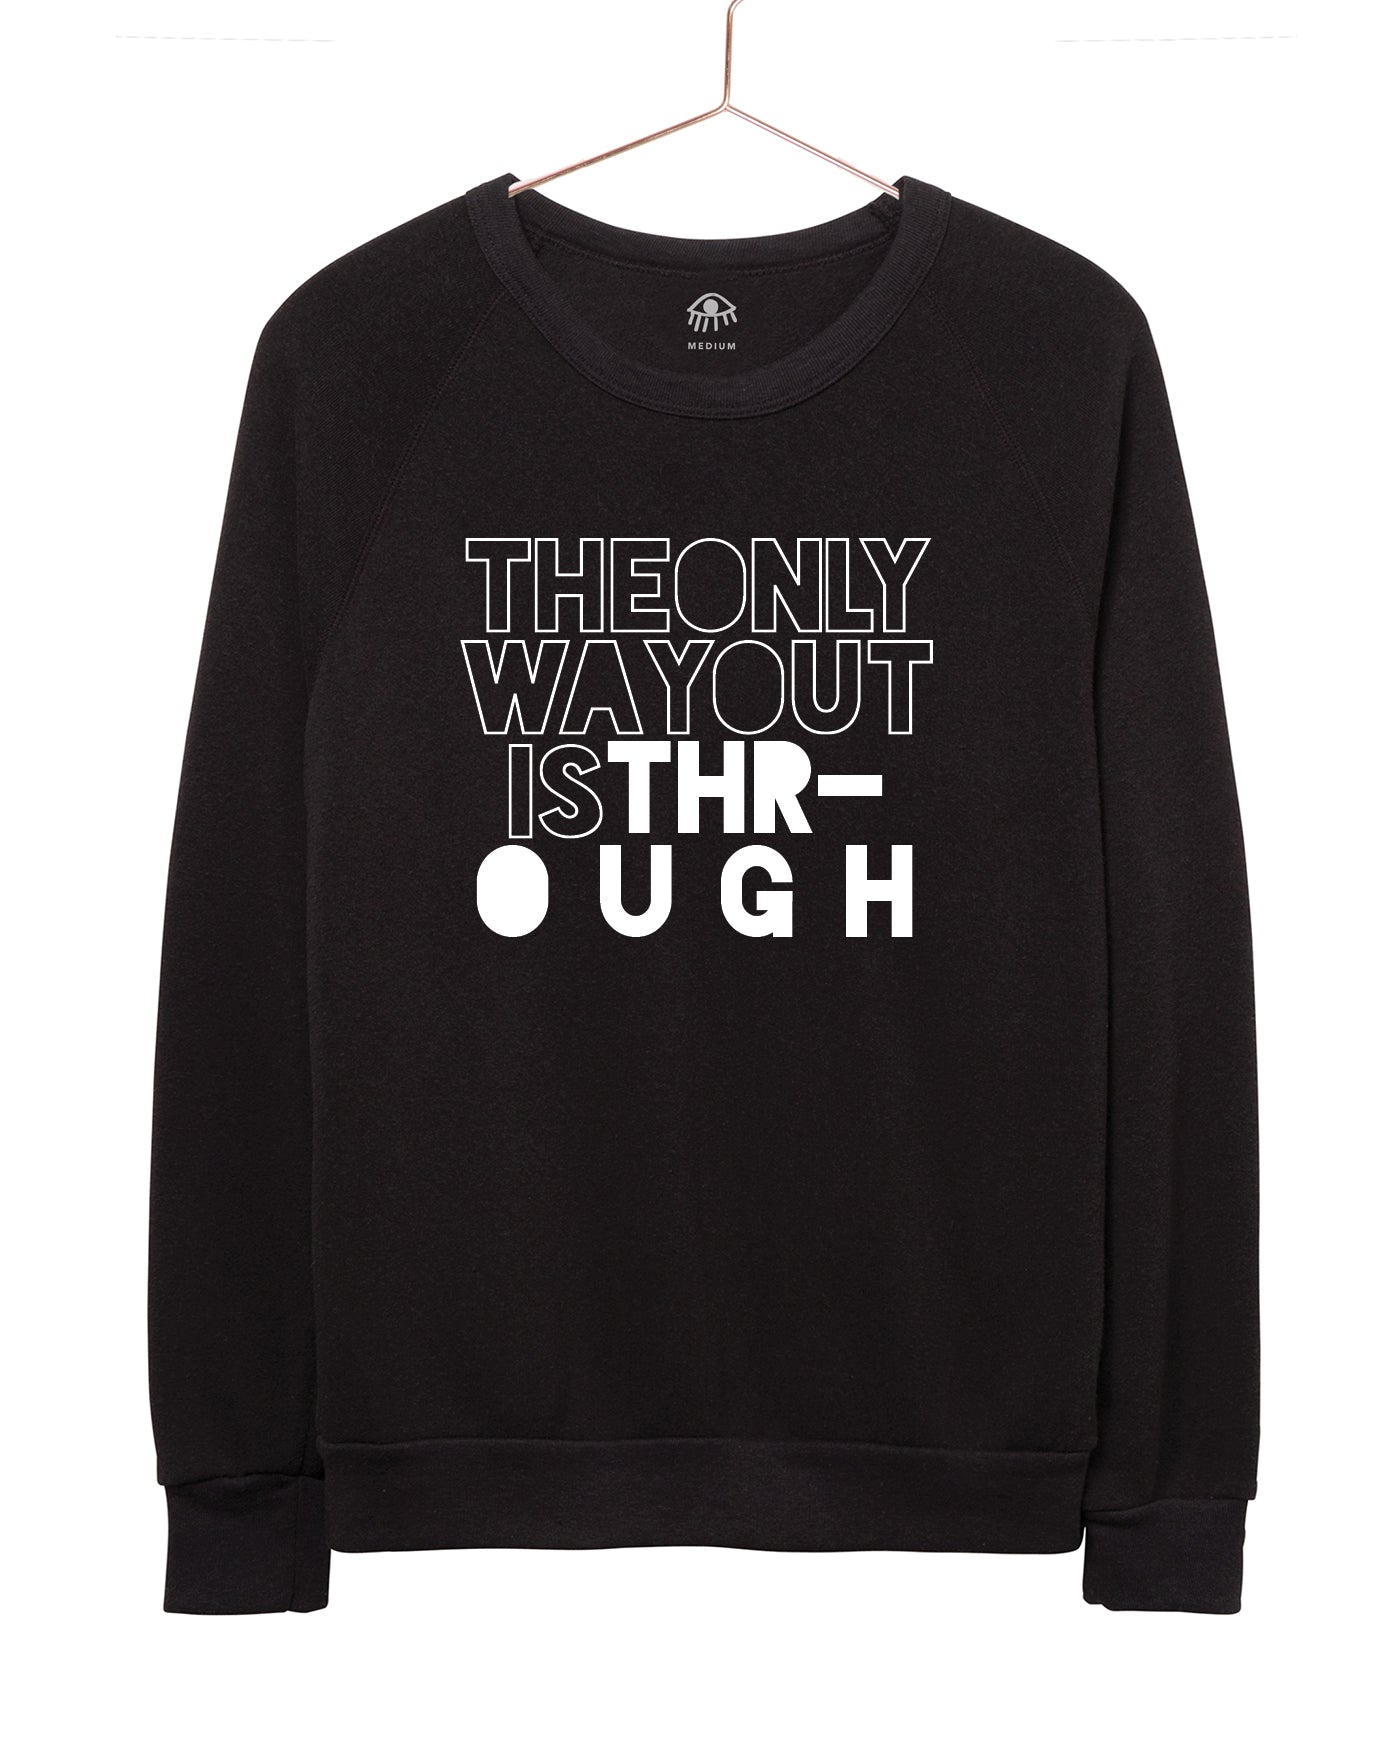 The only way out is through Women's Crewneck